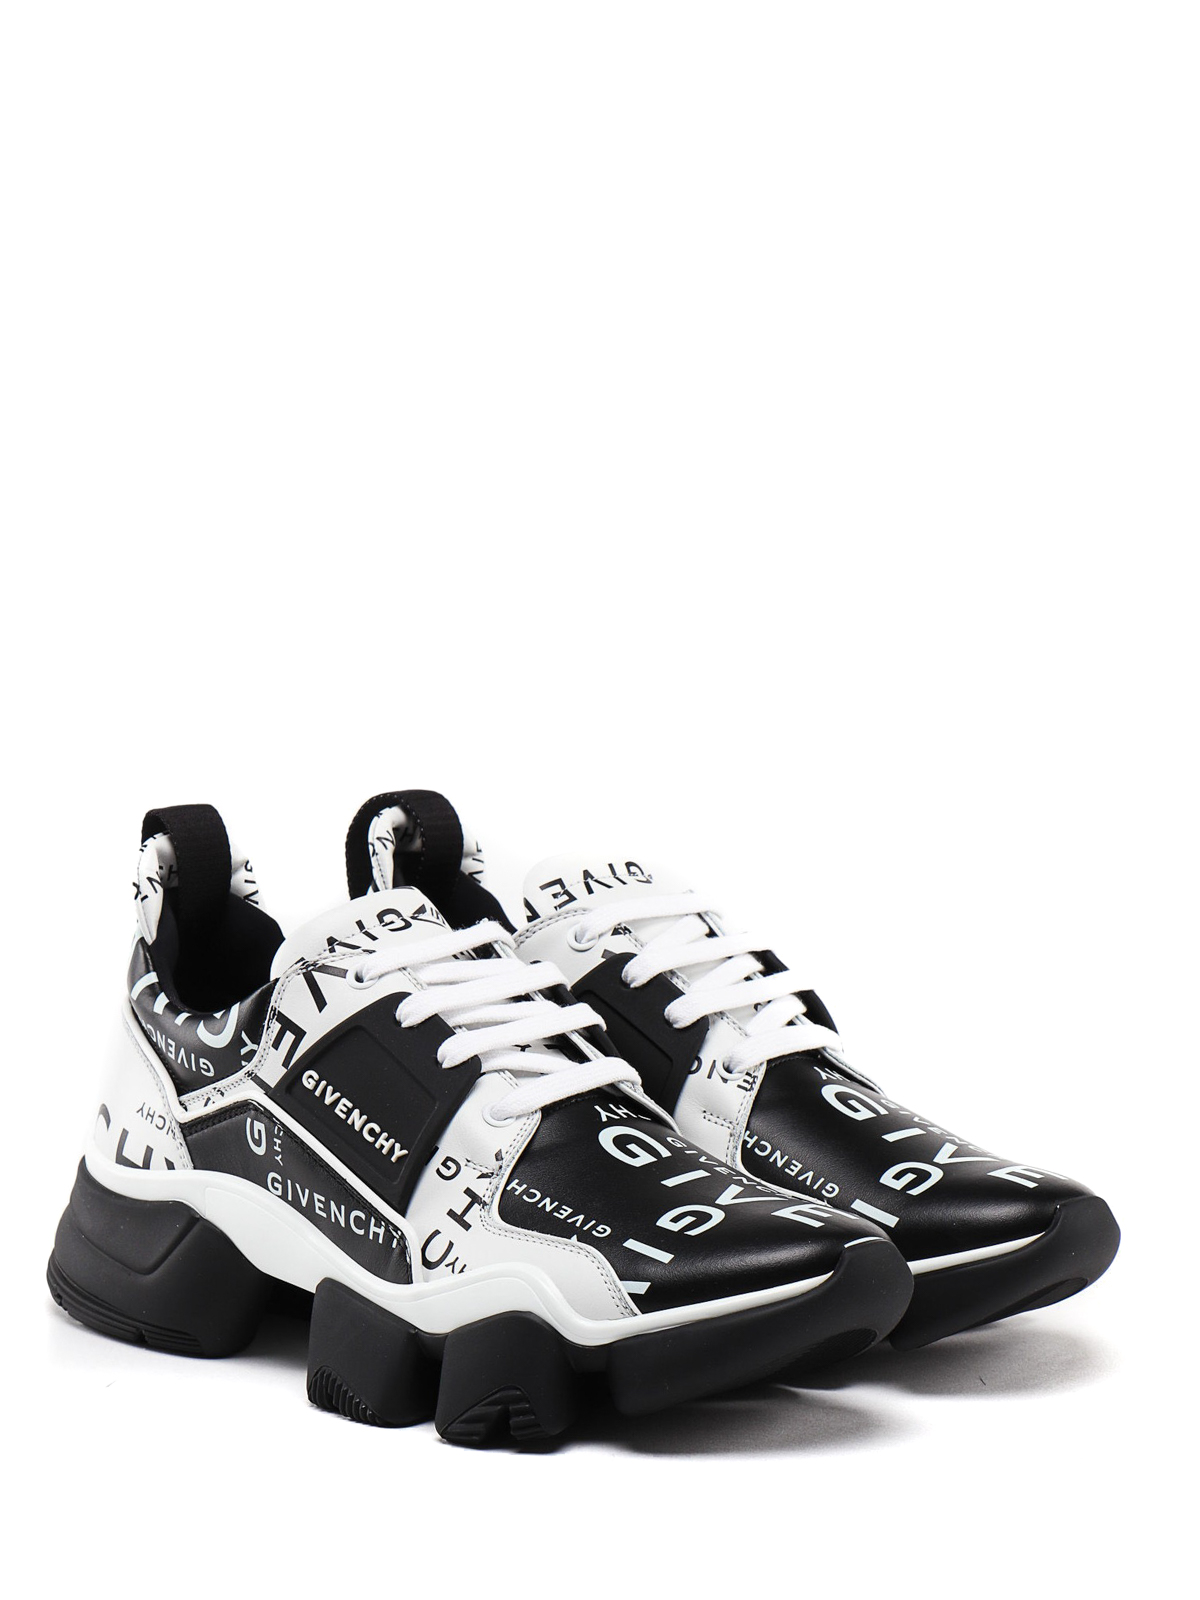 Givenchy - Jaw all over logo sneakers